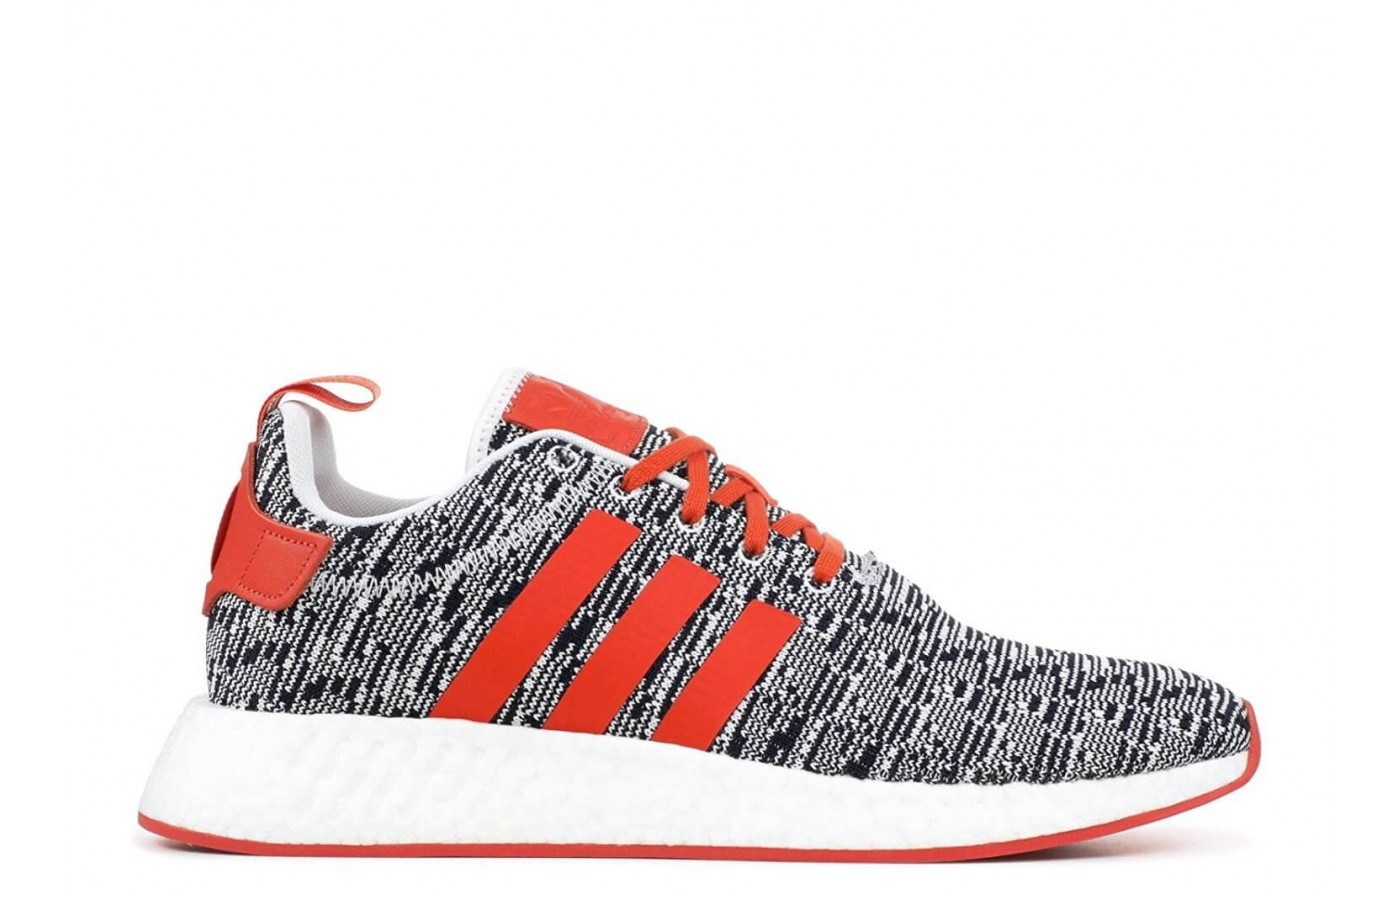 The Adidas NMD R2 in a grey and orange colorway